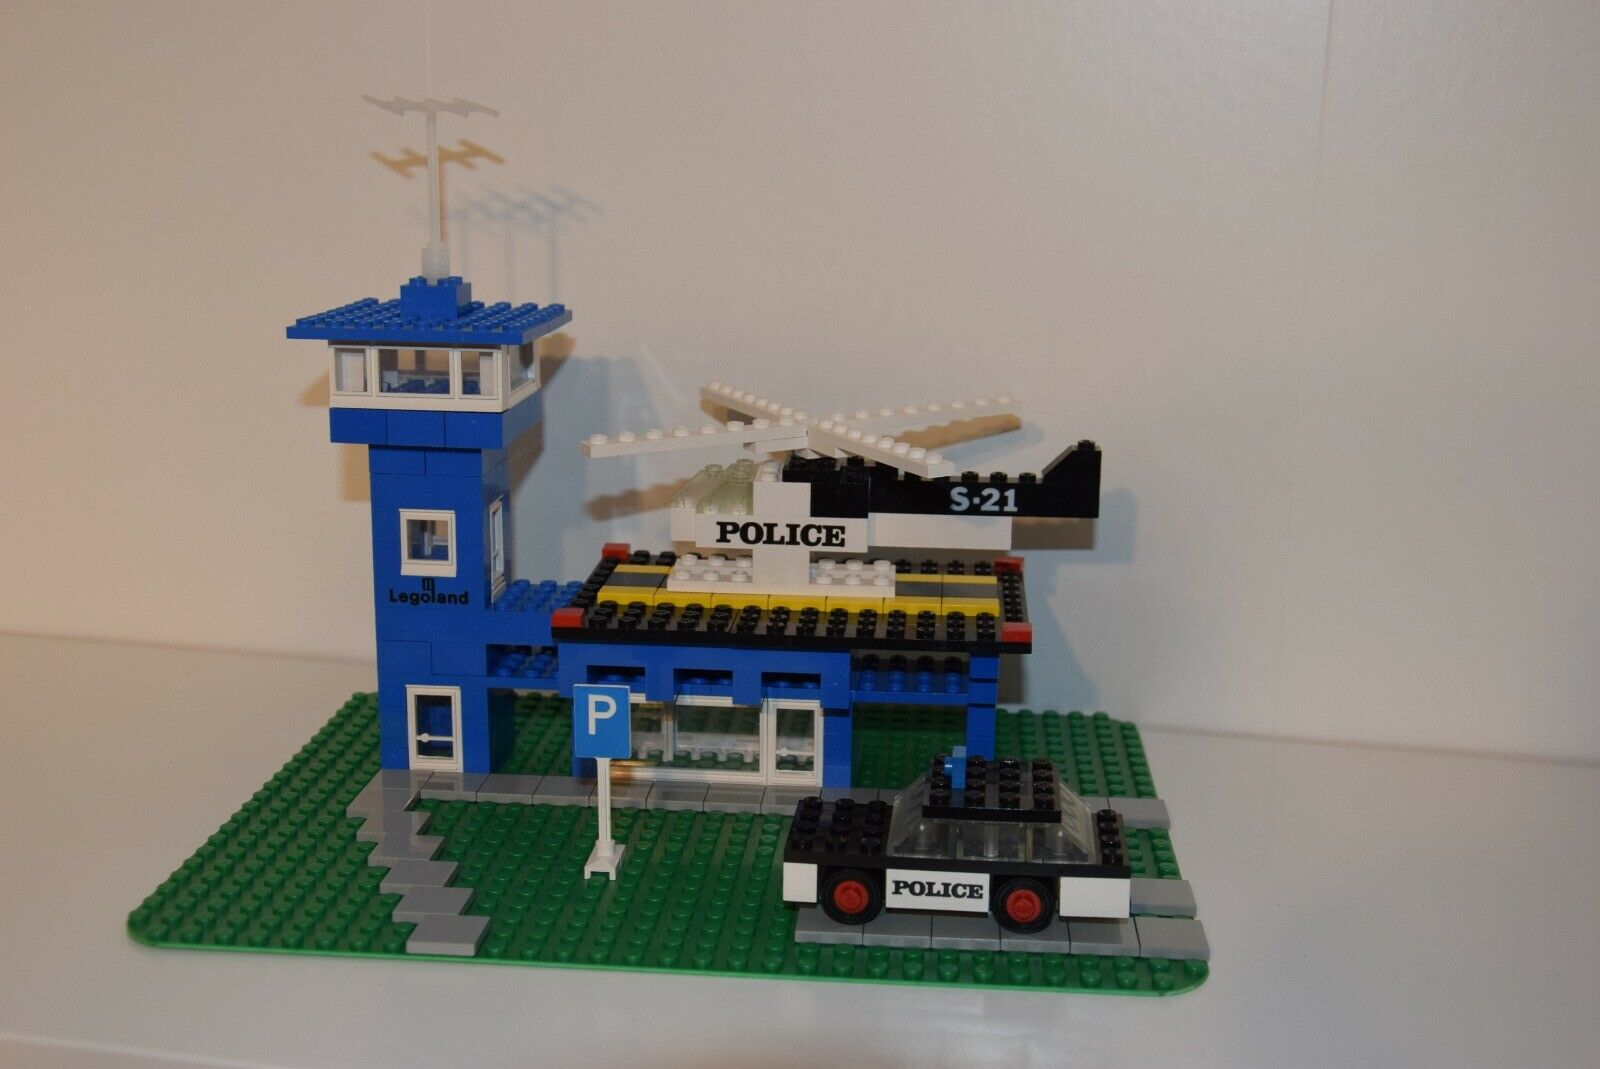 LEGO 354 Police Heliport 1972 Legoland UNIKAT Box, Instruction